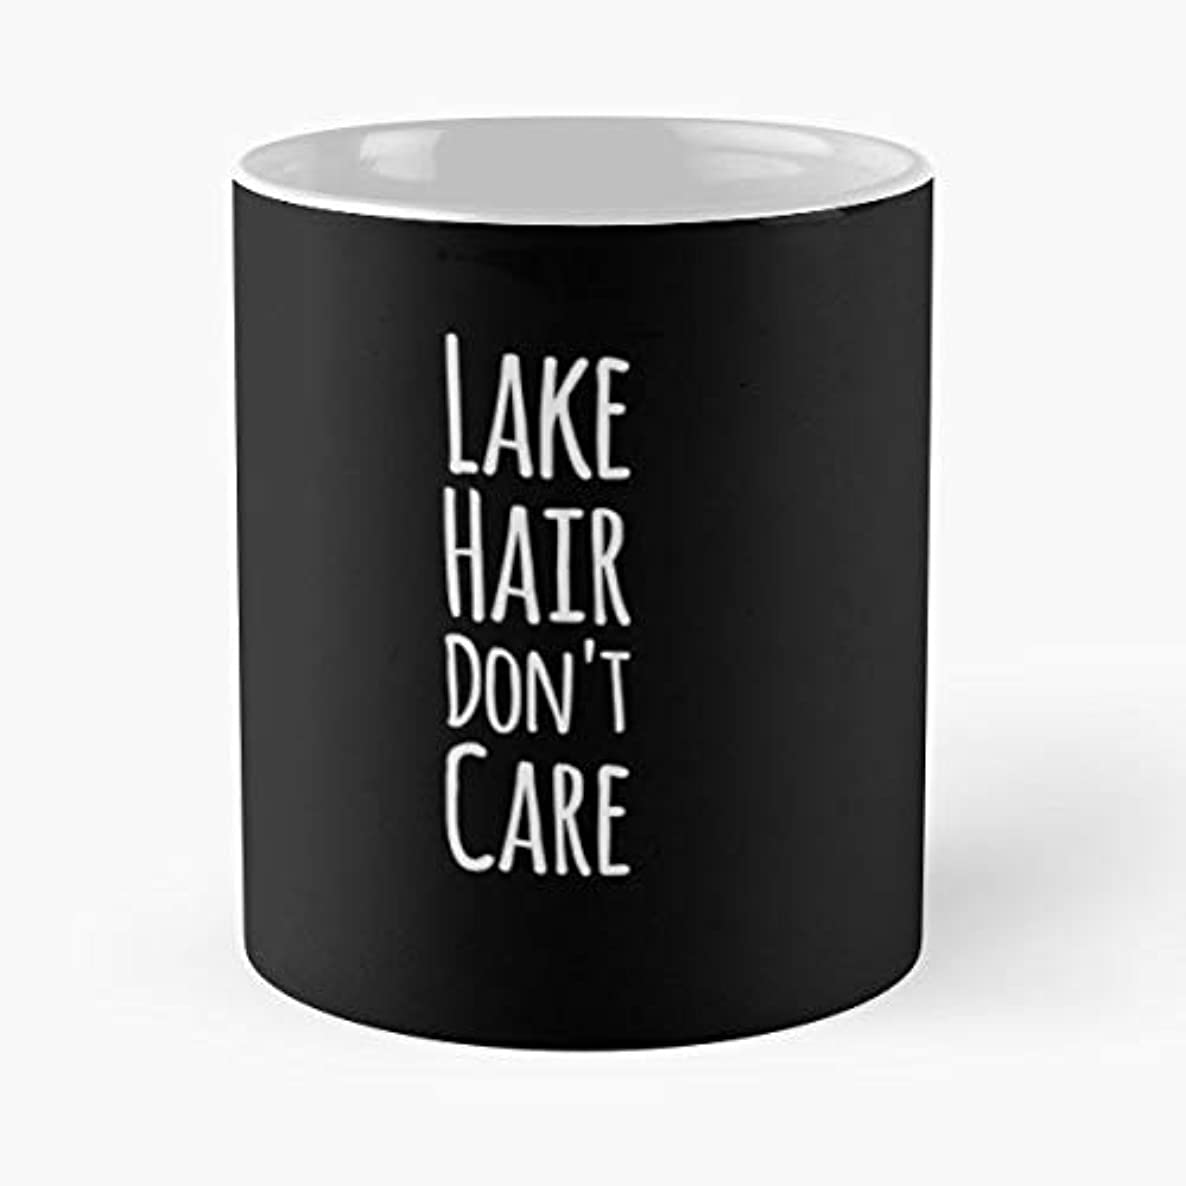 Lake Hair Dont Care Boat Captain Lover Funny - Coffee Mug Tea Cup Gift 11oz Mugs The Best Gift Holidays.